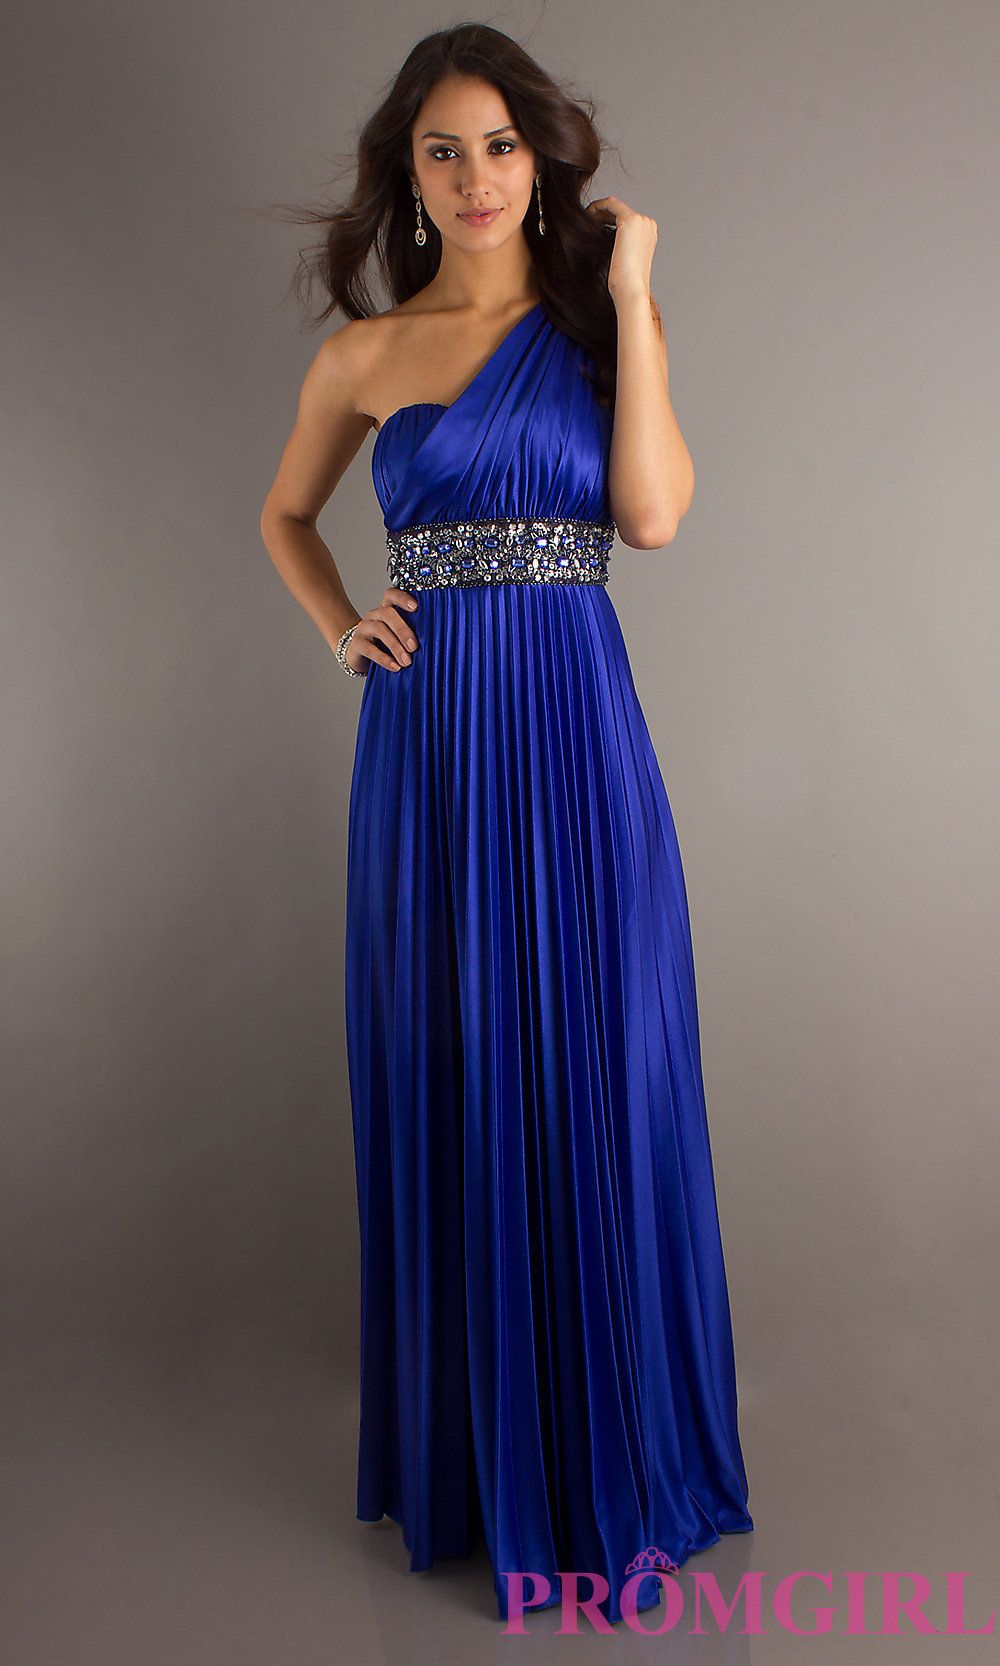 Long Blue Prom Dress by XOXO | Long prom dresses, Dark blue prom ...